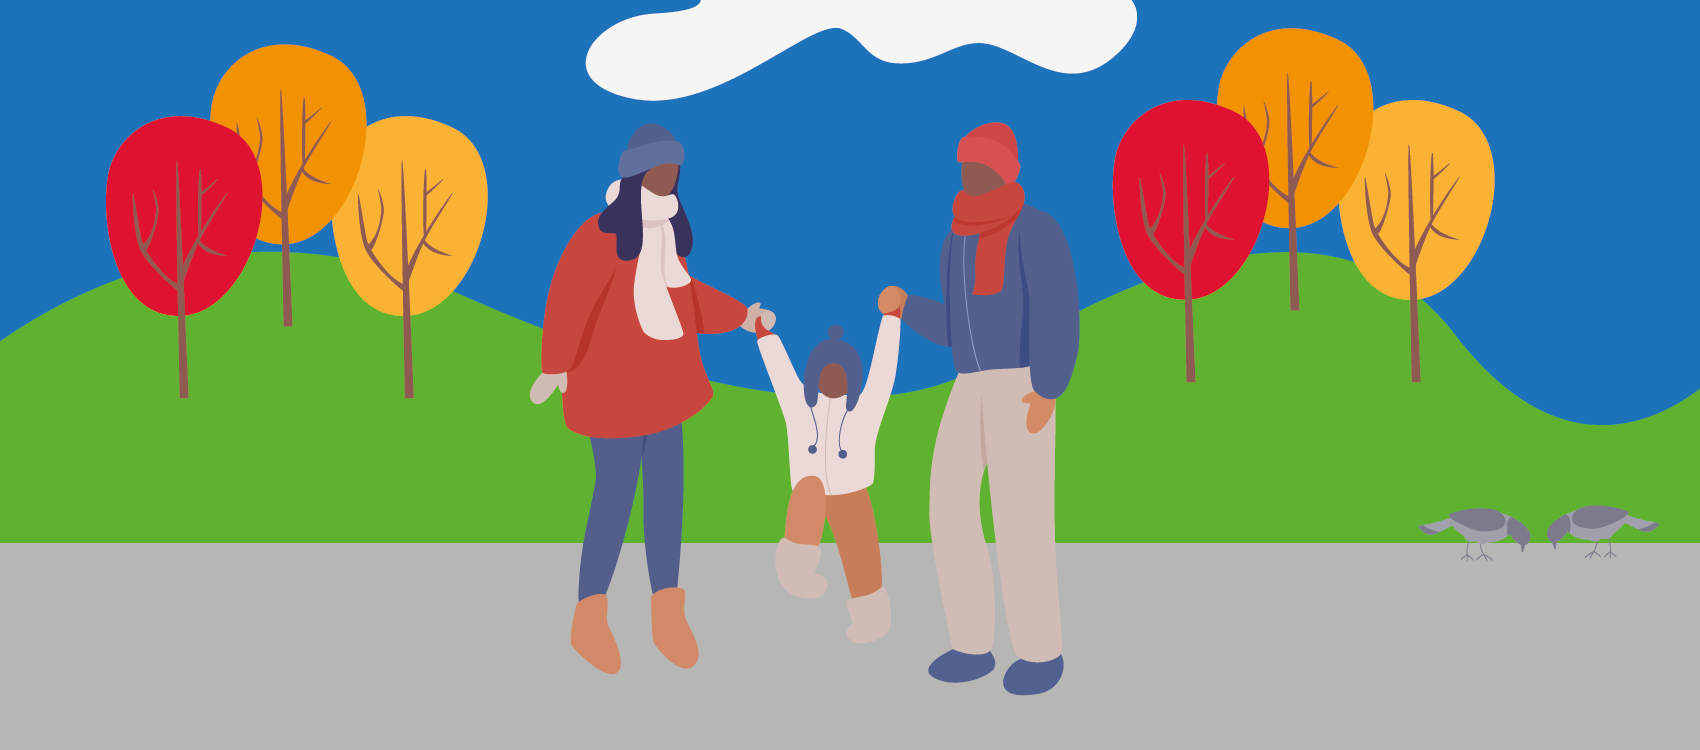 An illustration of a family walking outdoors in the winter